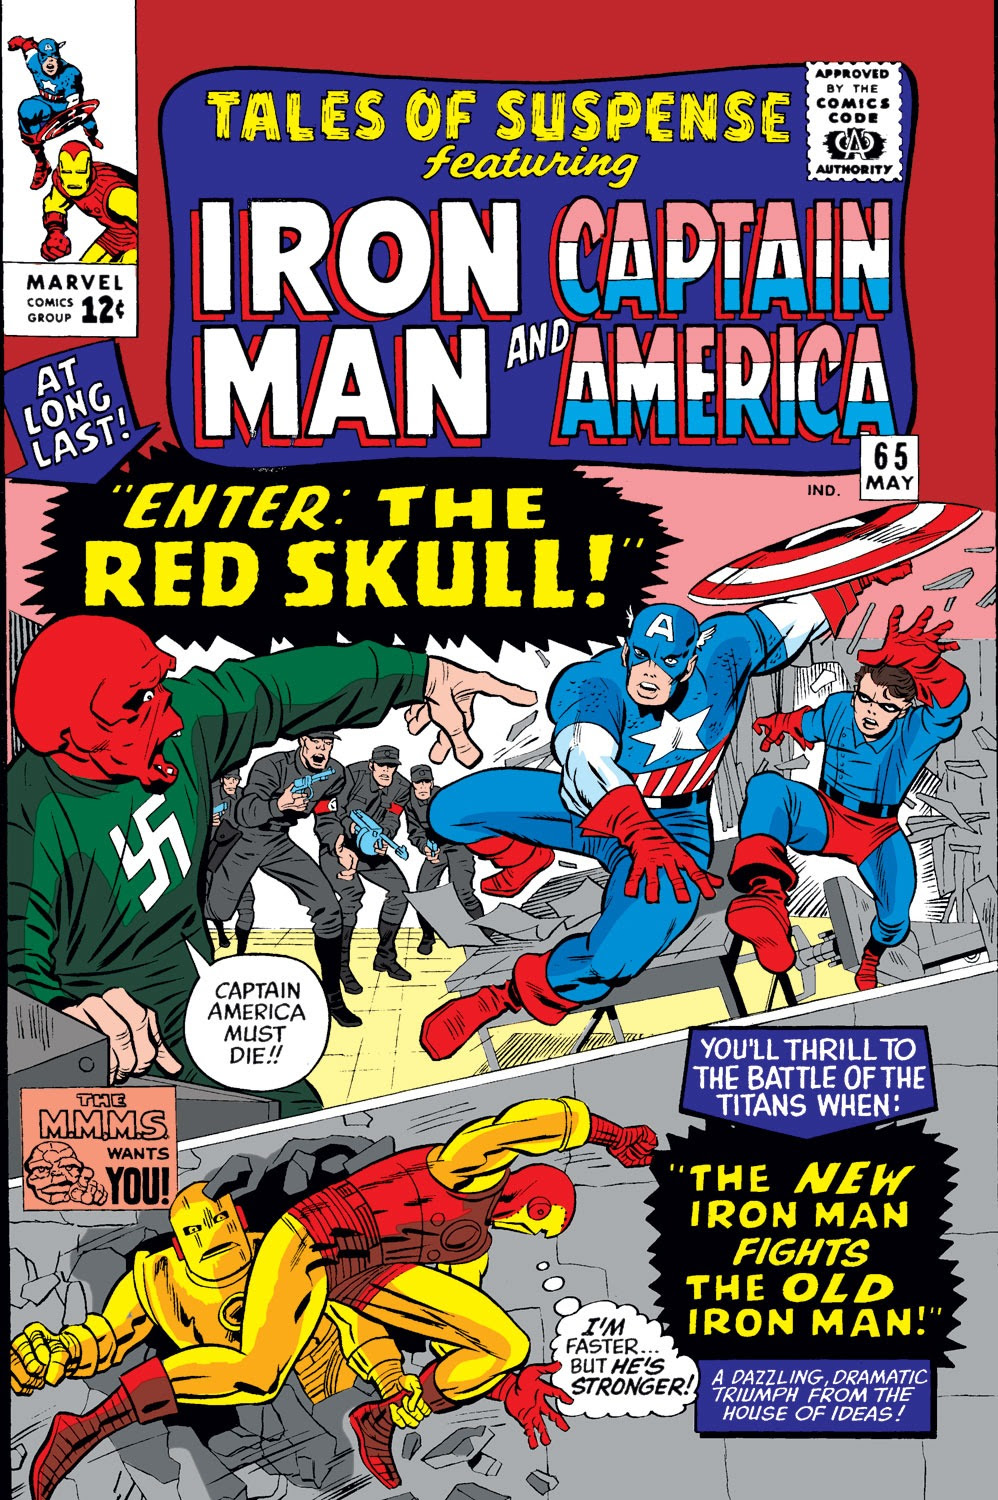 http://vignette3.wikia.nocookie.net/marveldatabase/images/6/61/Tales_of_Suspense_Vol_1_65.jpg/revision/latest?cb=20051020184418